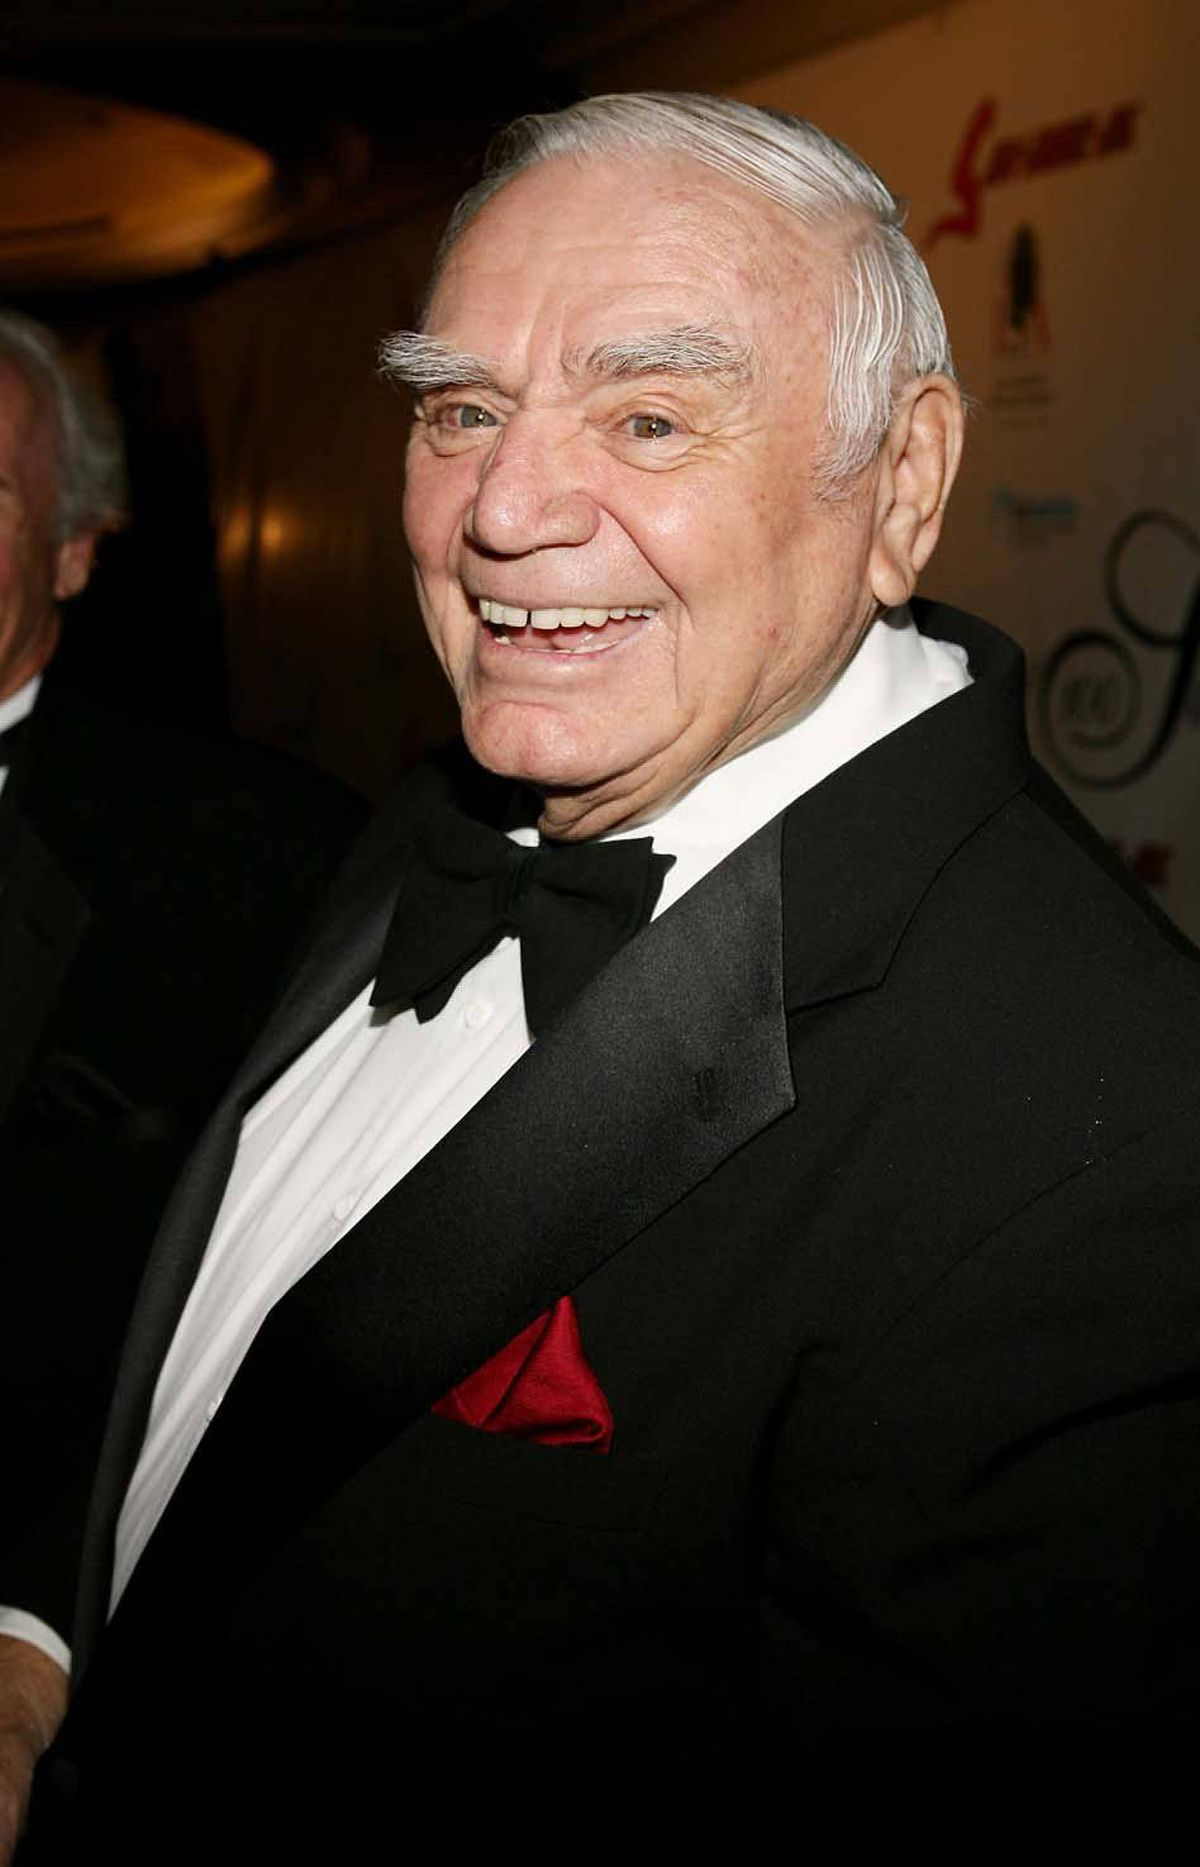 Actor Ernest Borgnine married actress Ethel Merman in 1964 but they barely lasted a month together